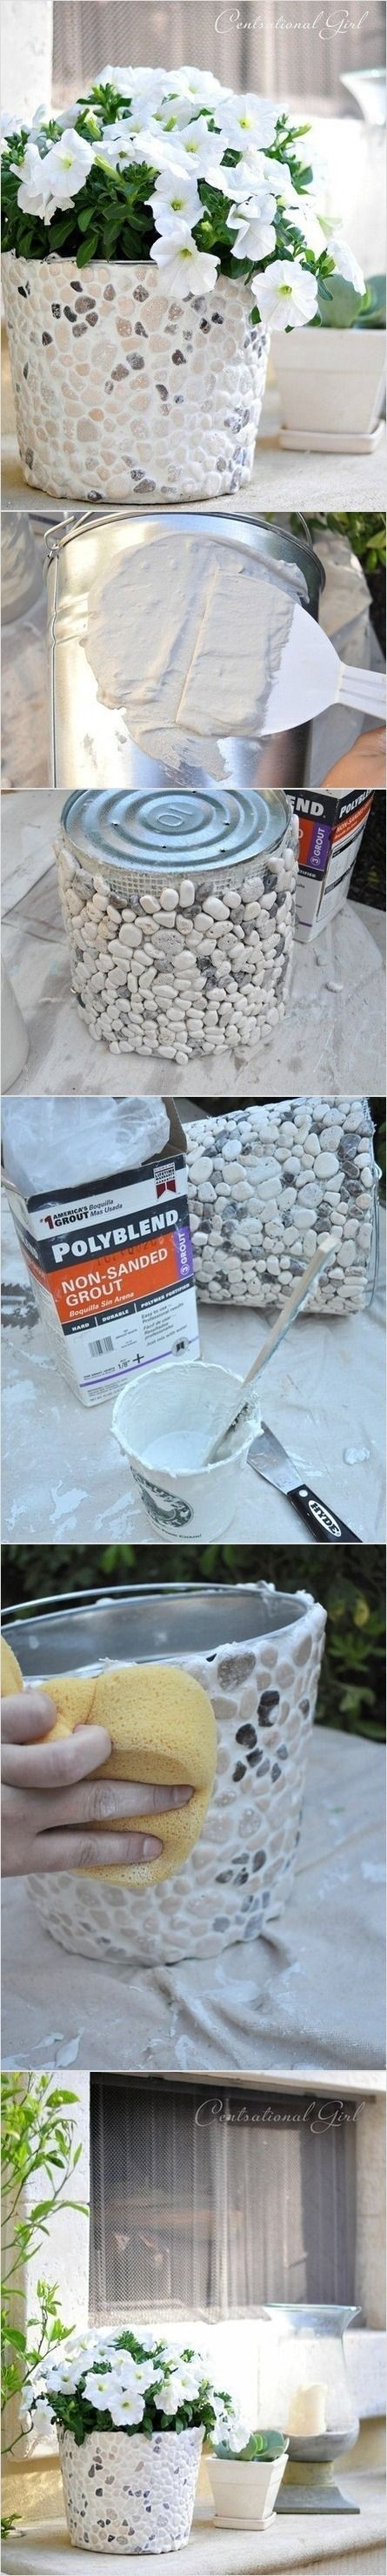 DIY Stone planter.  I could use my #10 cans for this!: Ideas, Mosaics Flowers Pots, Stones Planters, Coffee Cans, Pebble Mosaic, Paintings Cans, Flower Pots, Tins Cans, Flowerpot